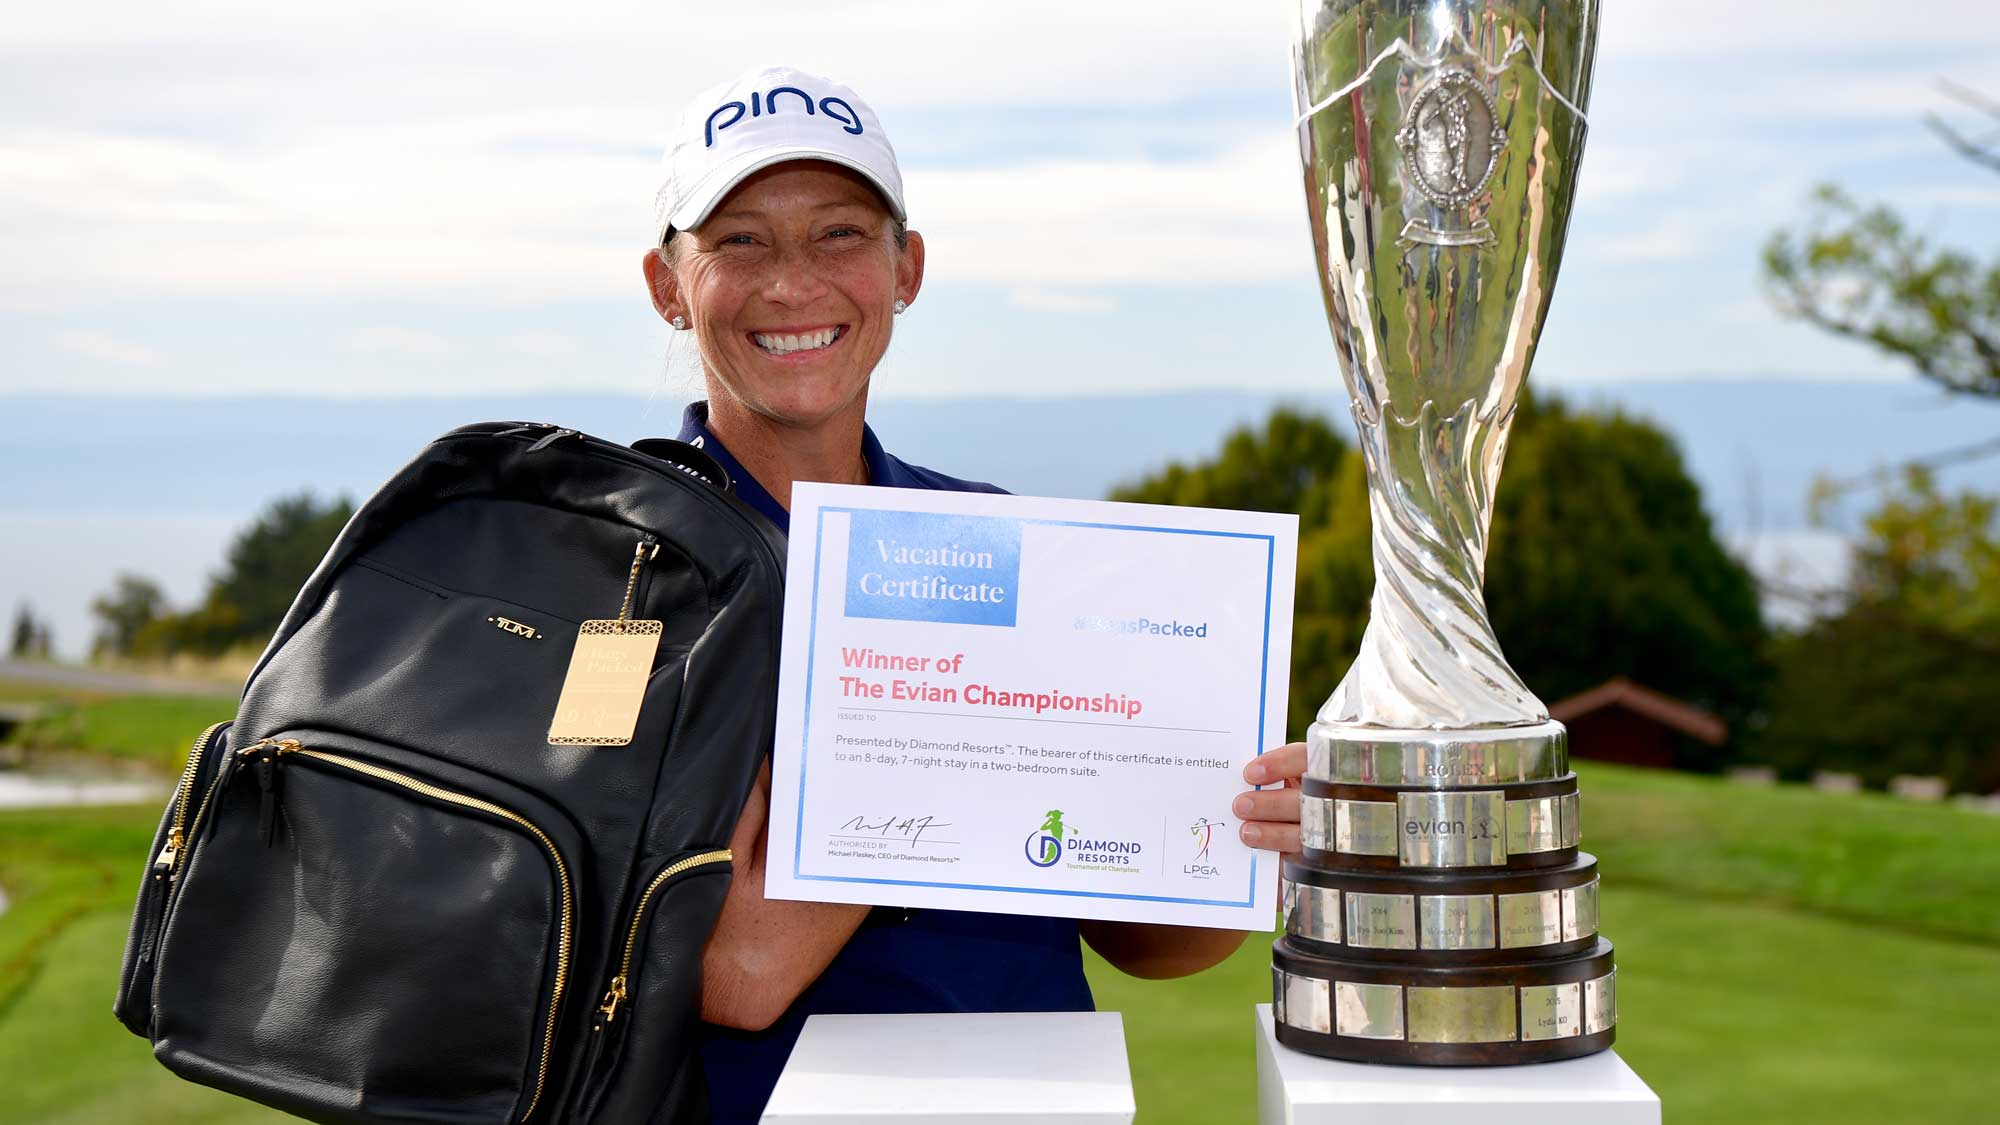 Angela Stanford has her #BagsPacked for the 2019 Diamond Resorts Tournament of Champions after her first career major victory at the 2018 Evian Championship